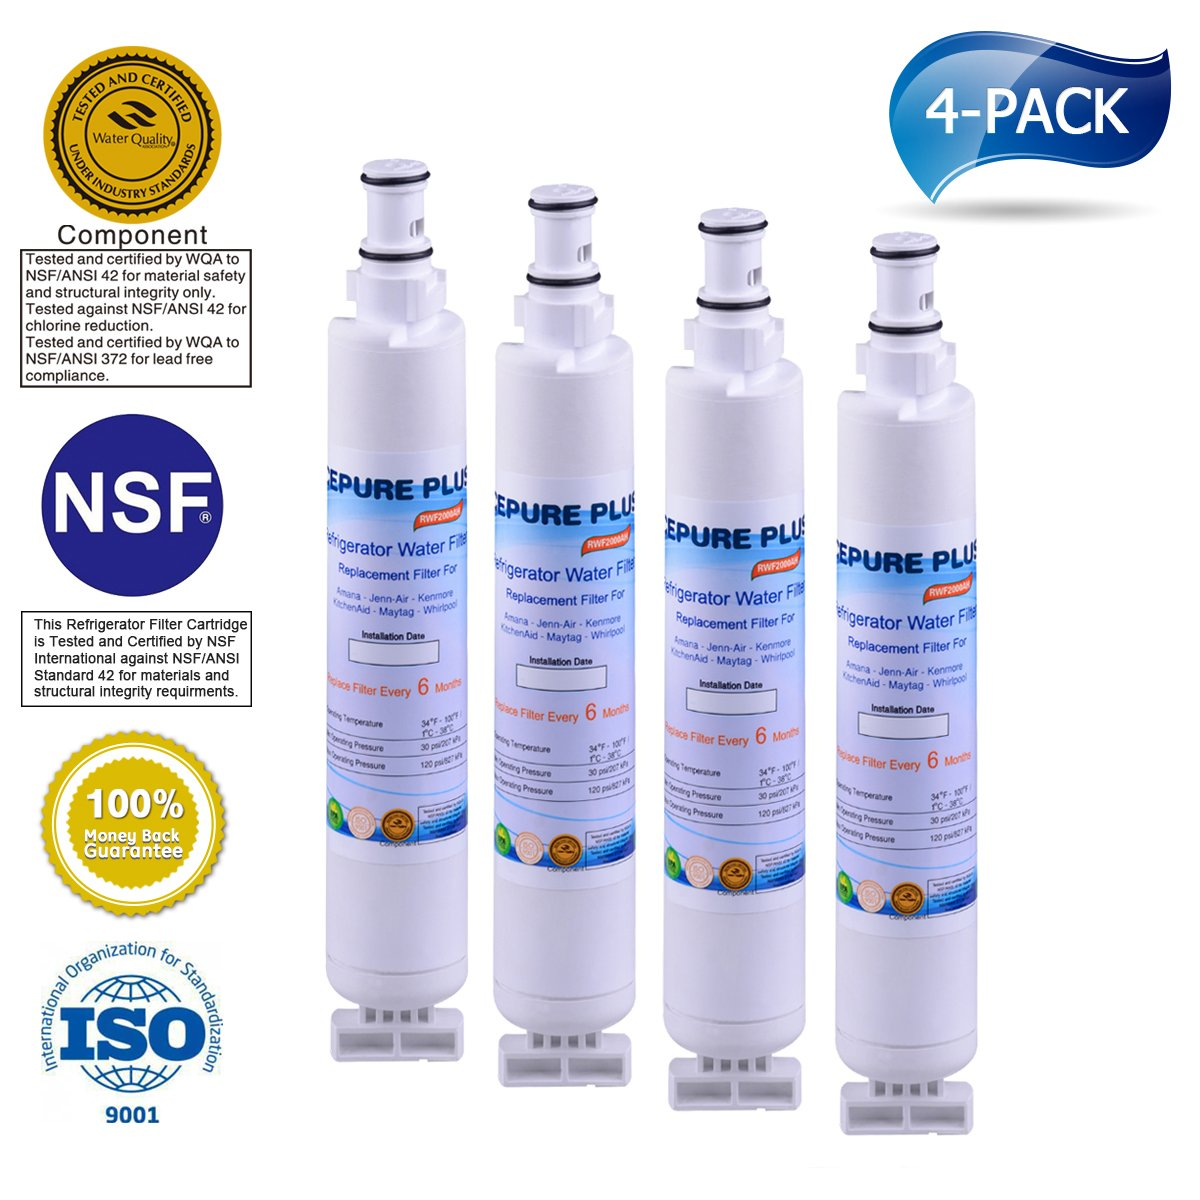 ICEPURE PLUS 4396701 Replacement for Whirlpool 4396701,EDR6D1,Kenmore 9915,46-9915,NL120V,4396701,4396702 Refrigerator Water Filter 4 Pack